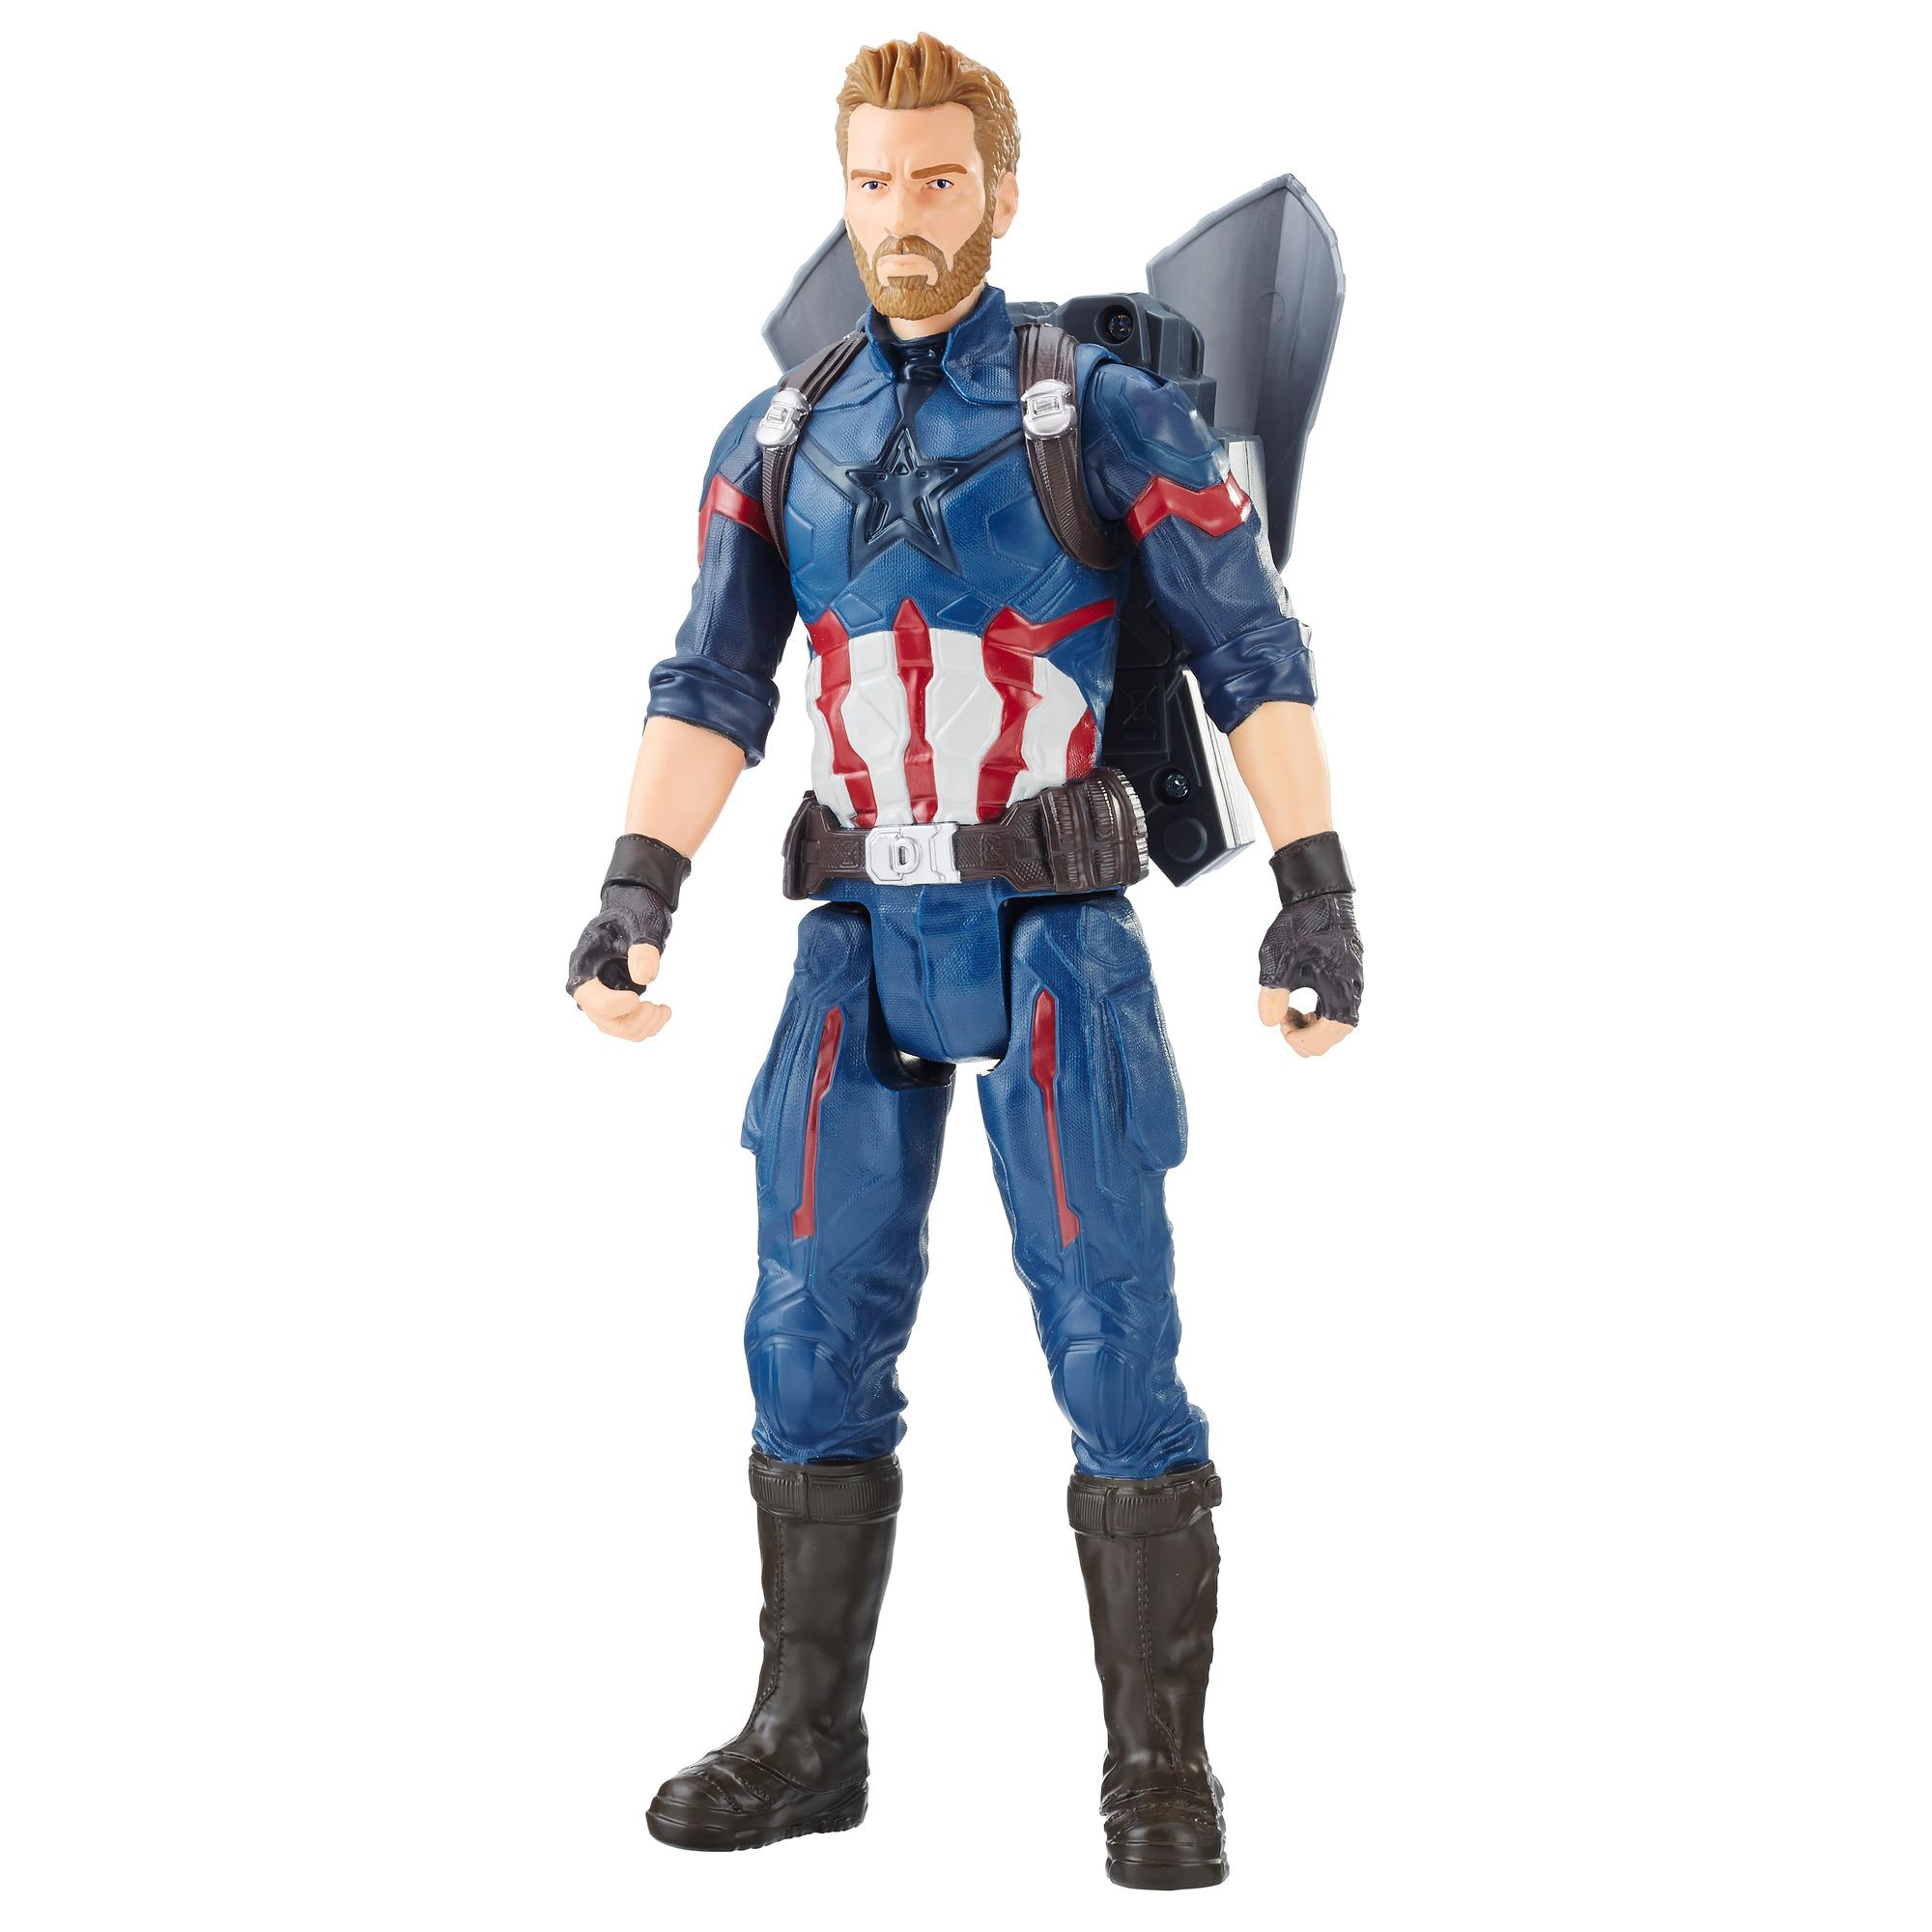 AVENGERS INFINITY WAR -  FIGURINE TITAN POWER PACK 30 CM CAPTAIN AMERICA